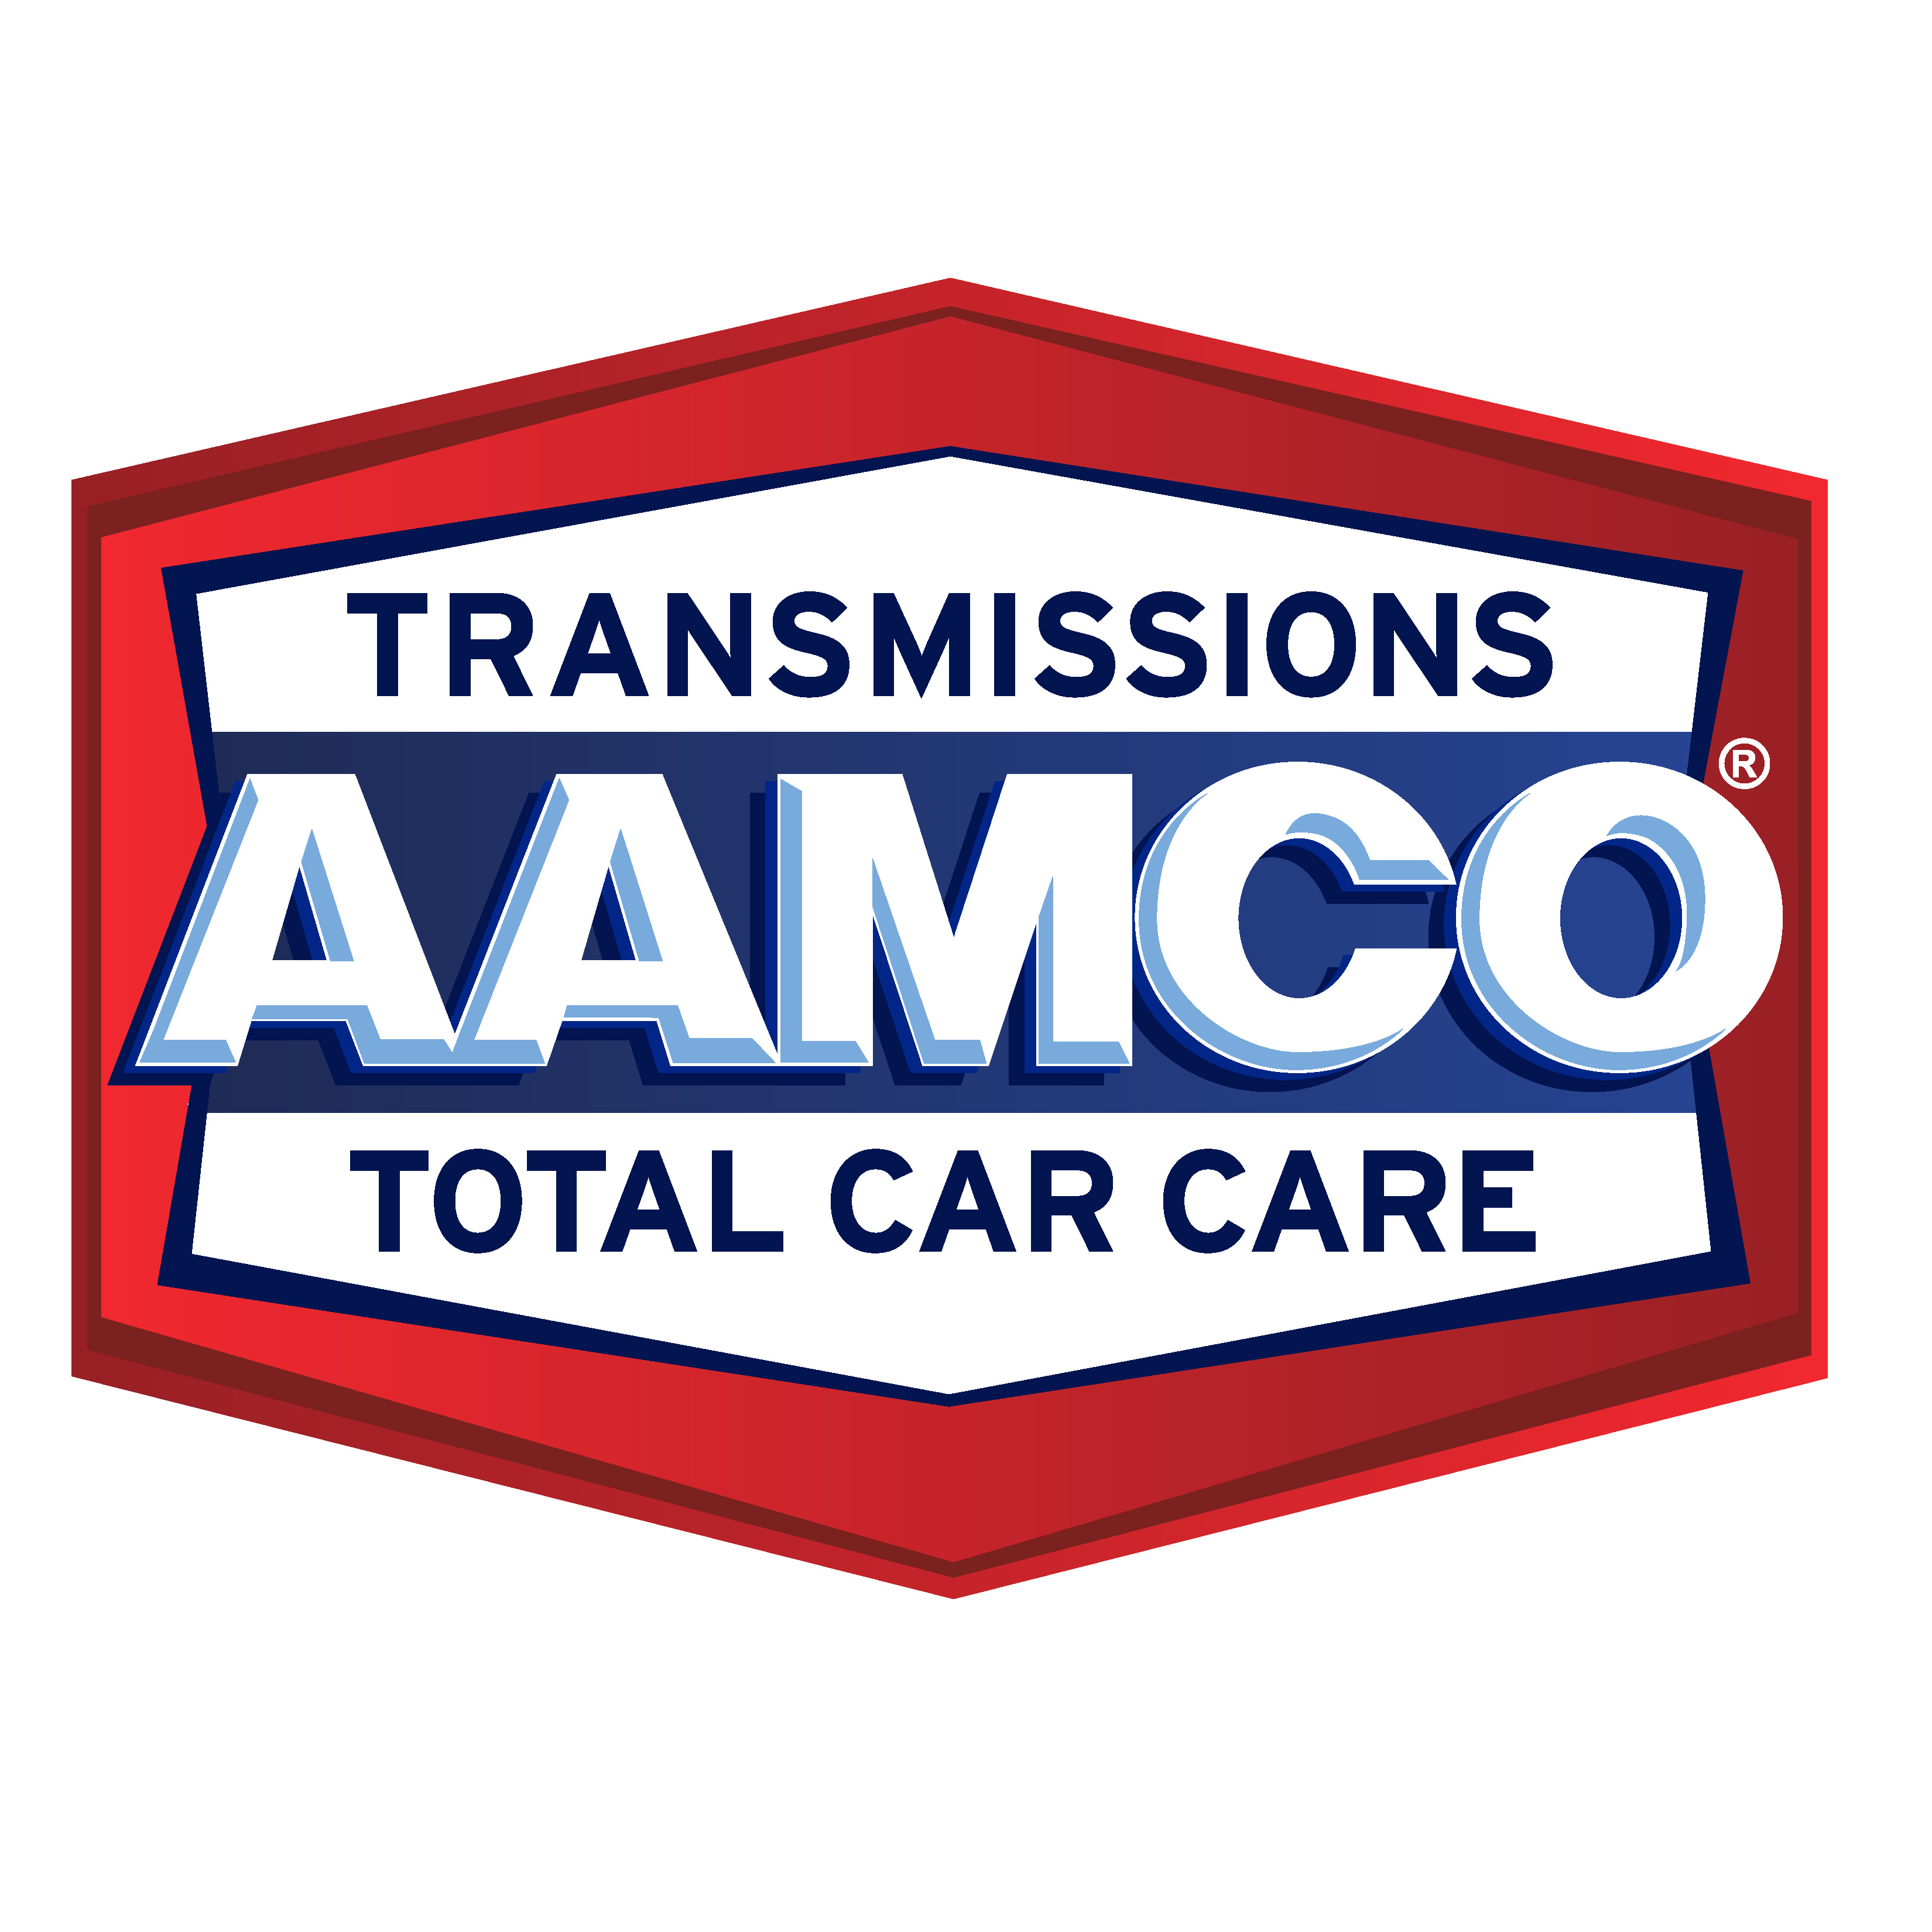 AAMCO Transmissions & Total Car Care: Gilbert/Chandler